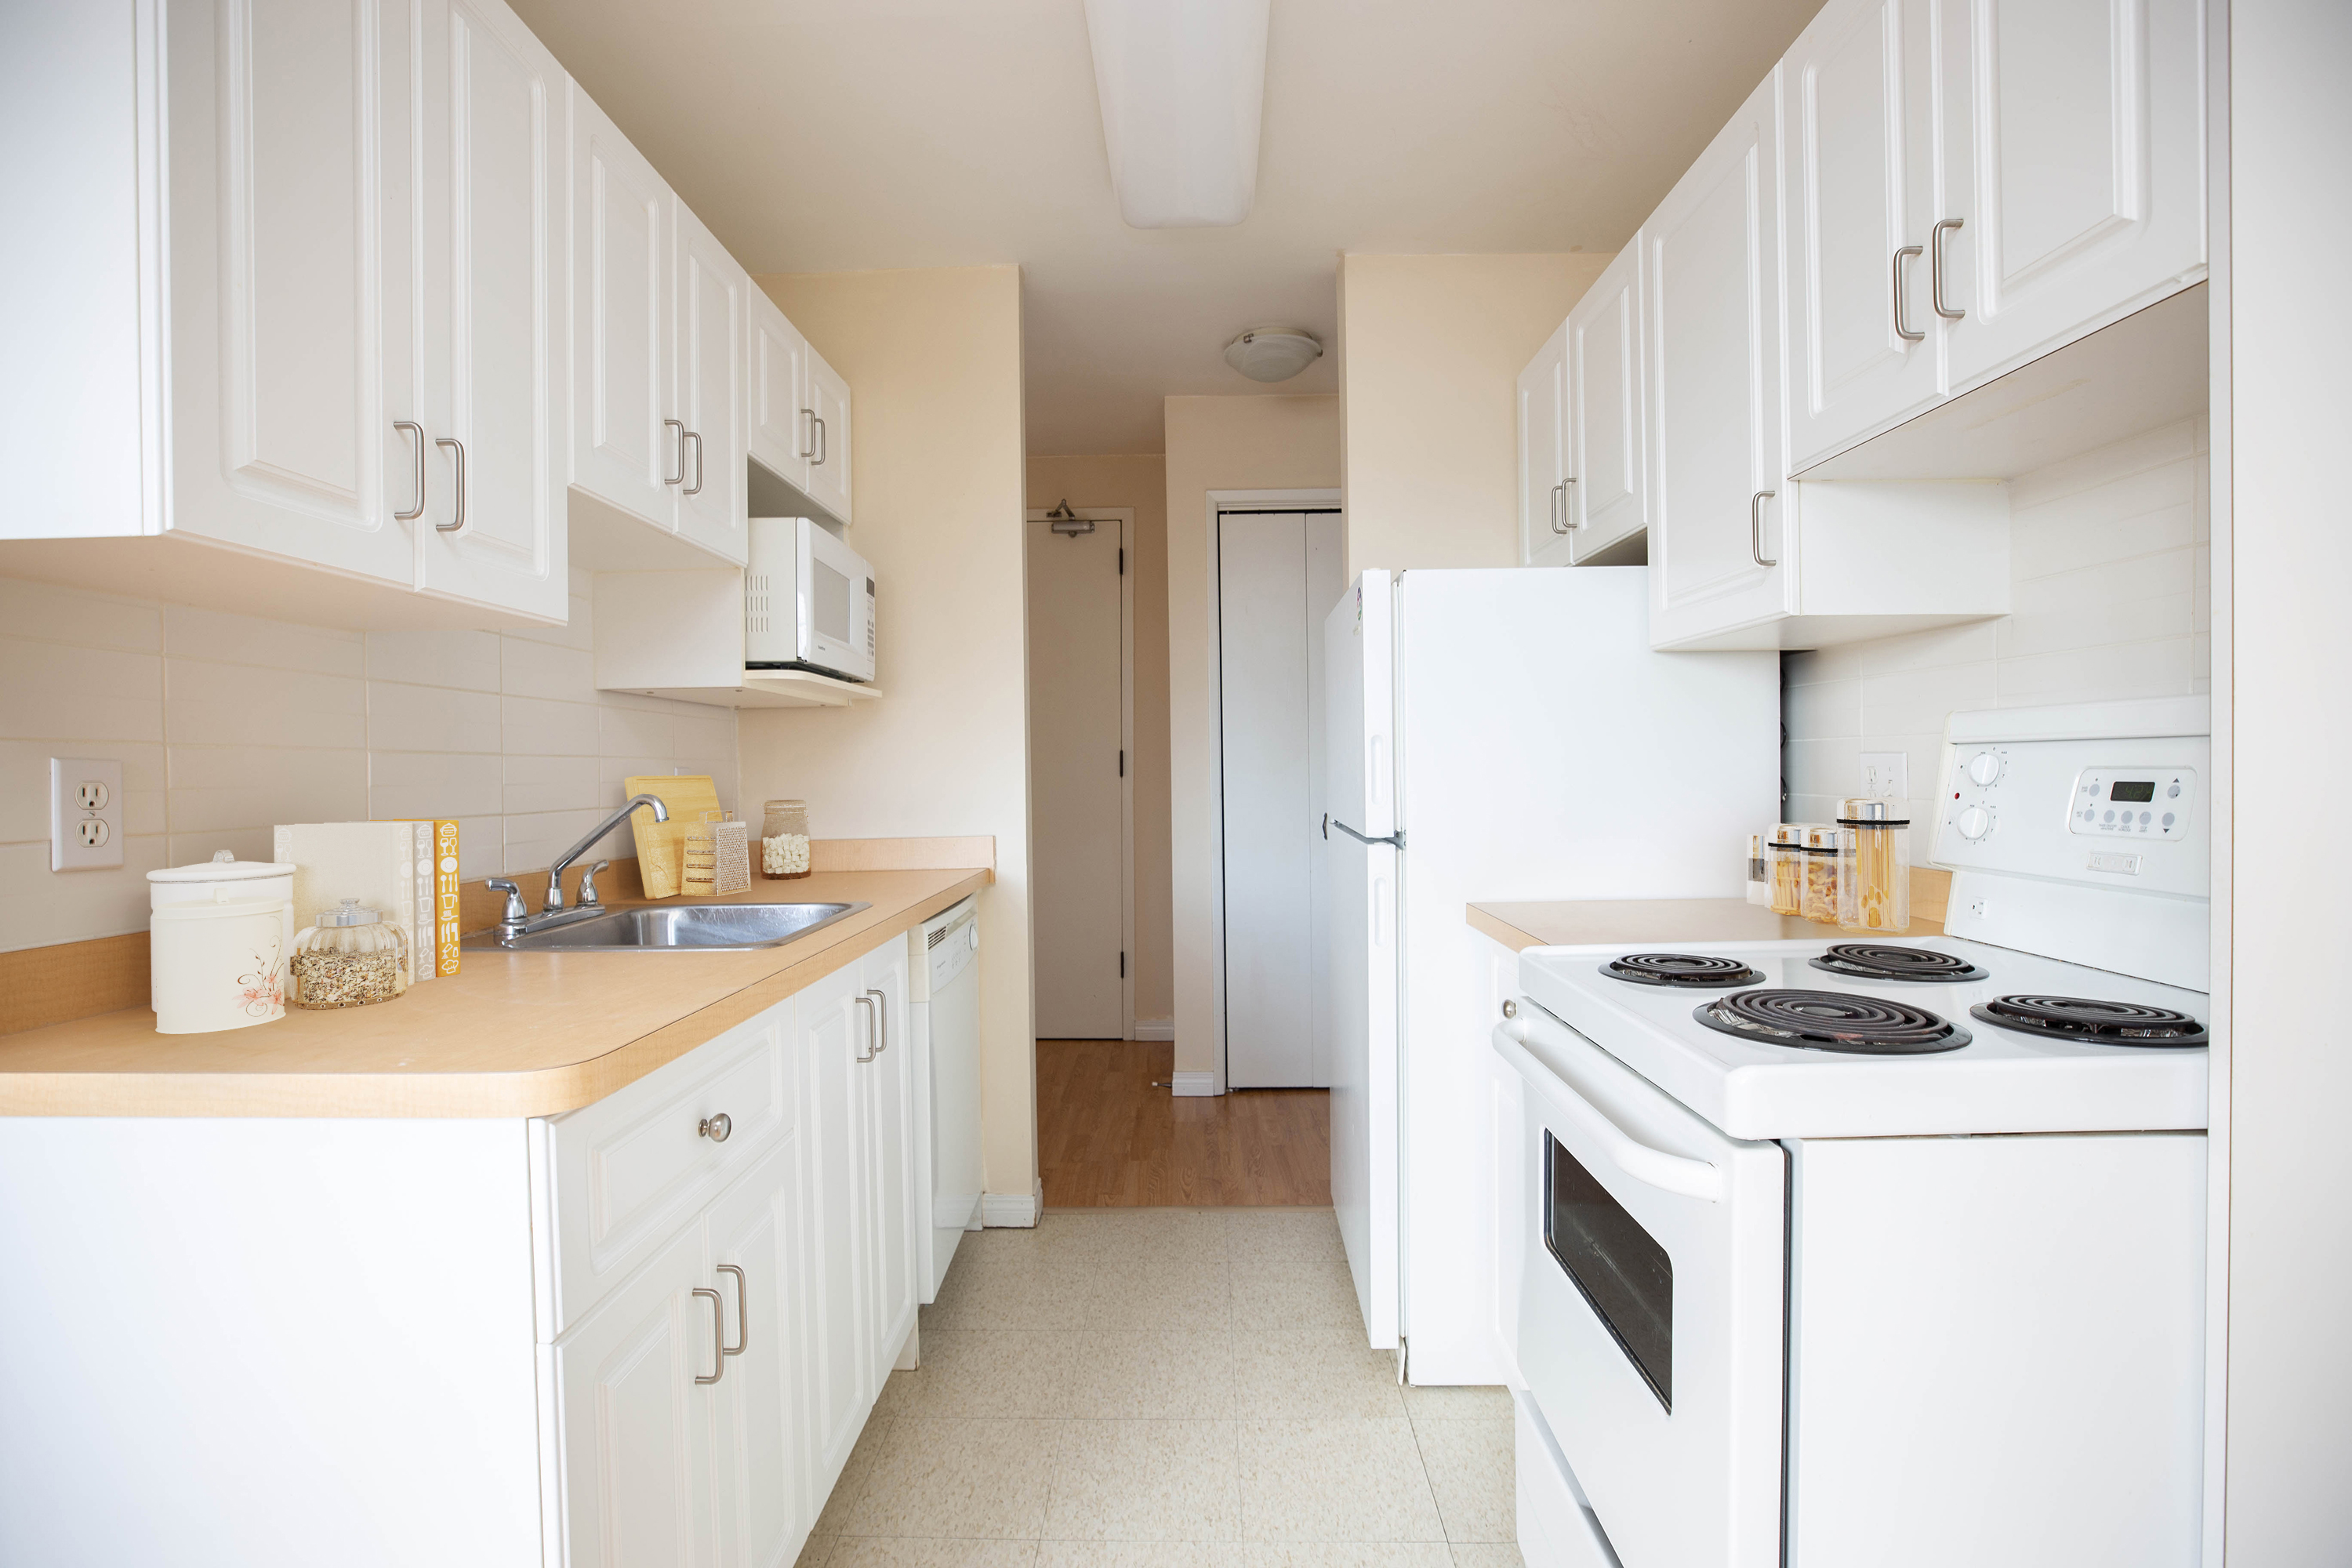 Towers Realty Group - Laval Apartments - 1BR - Kitchen